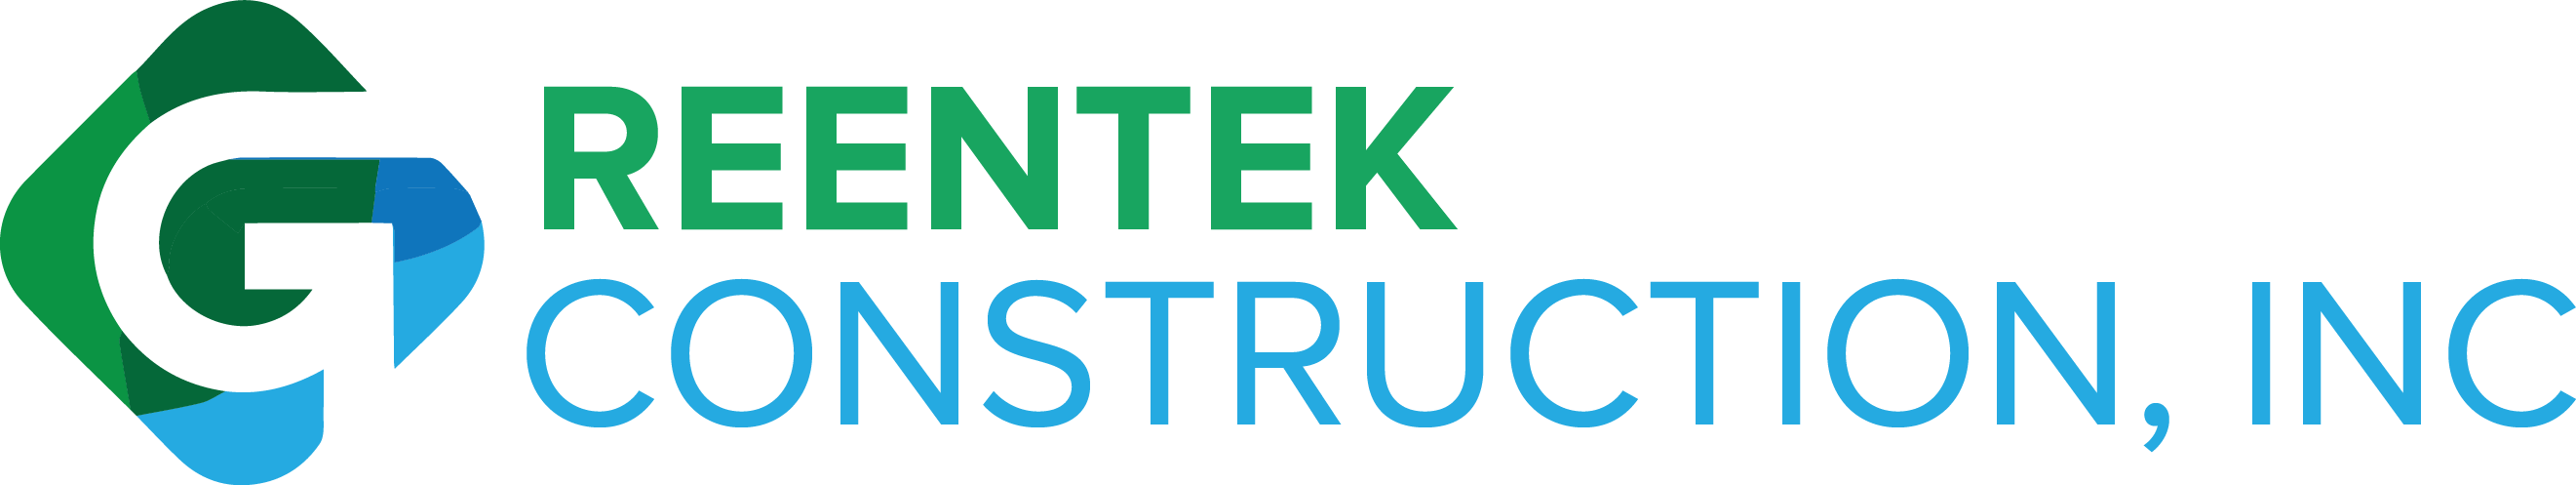 Blog | GreenTek Construction